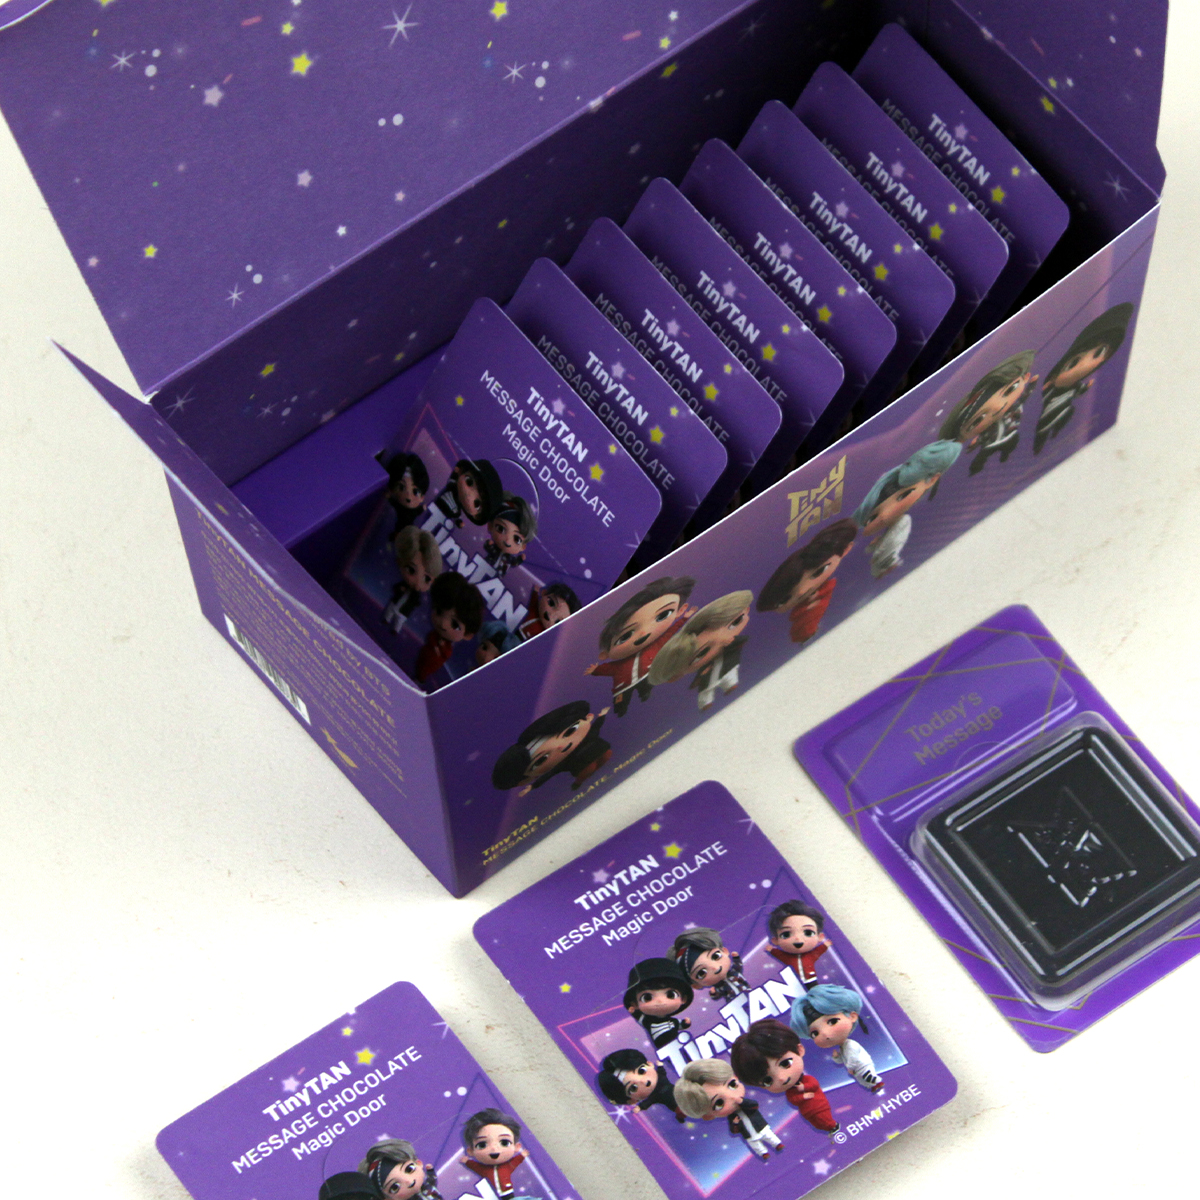 600 sweetest messages of BTS delivered with more than chocolate.com